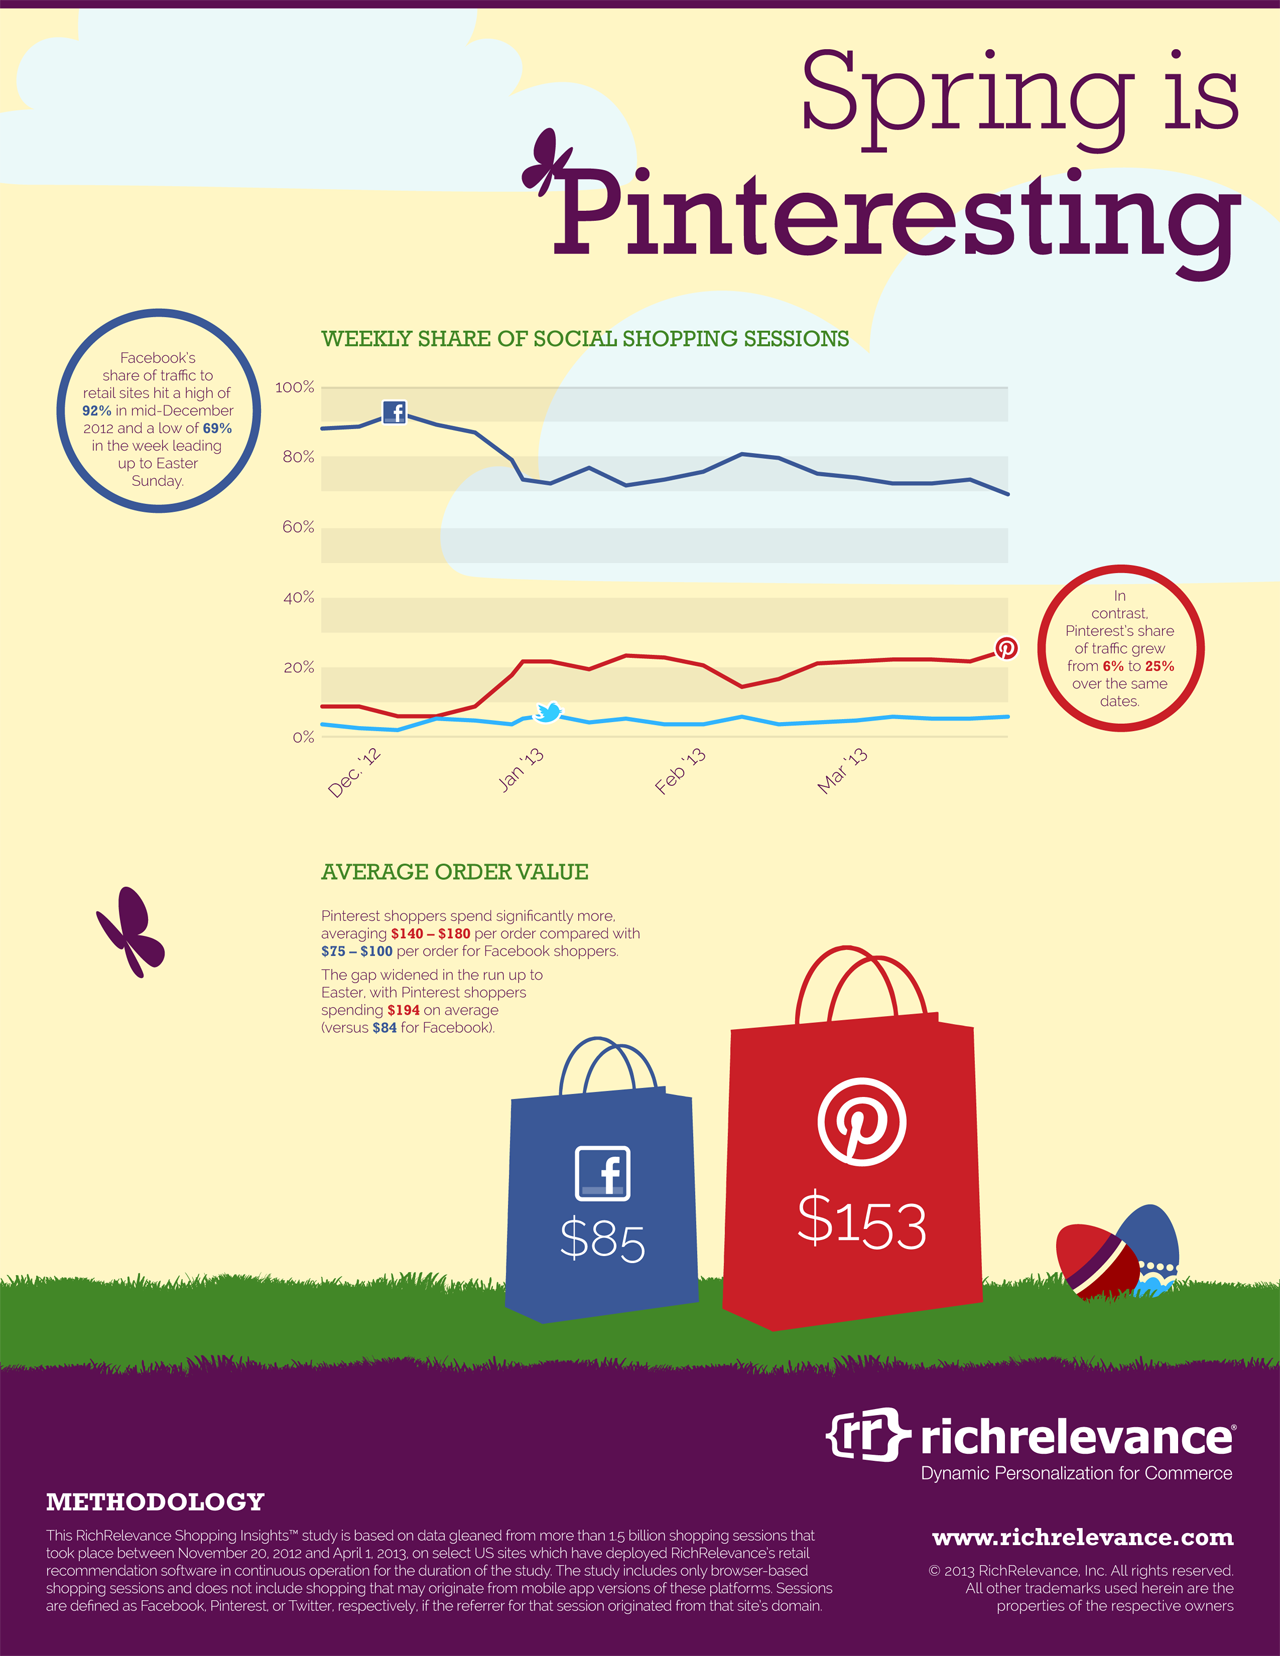 Pinterest Now Accounts for 25% of Social Shopping Sessions